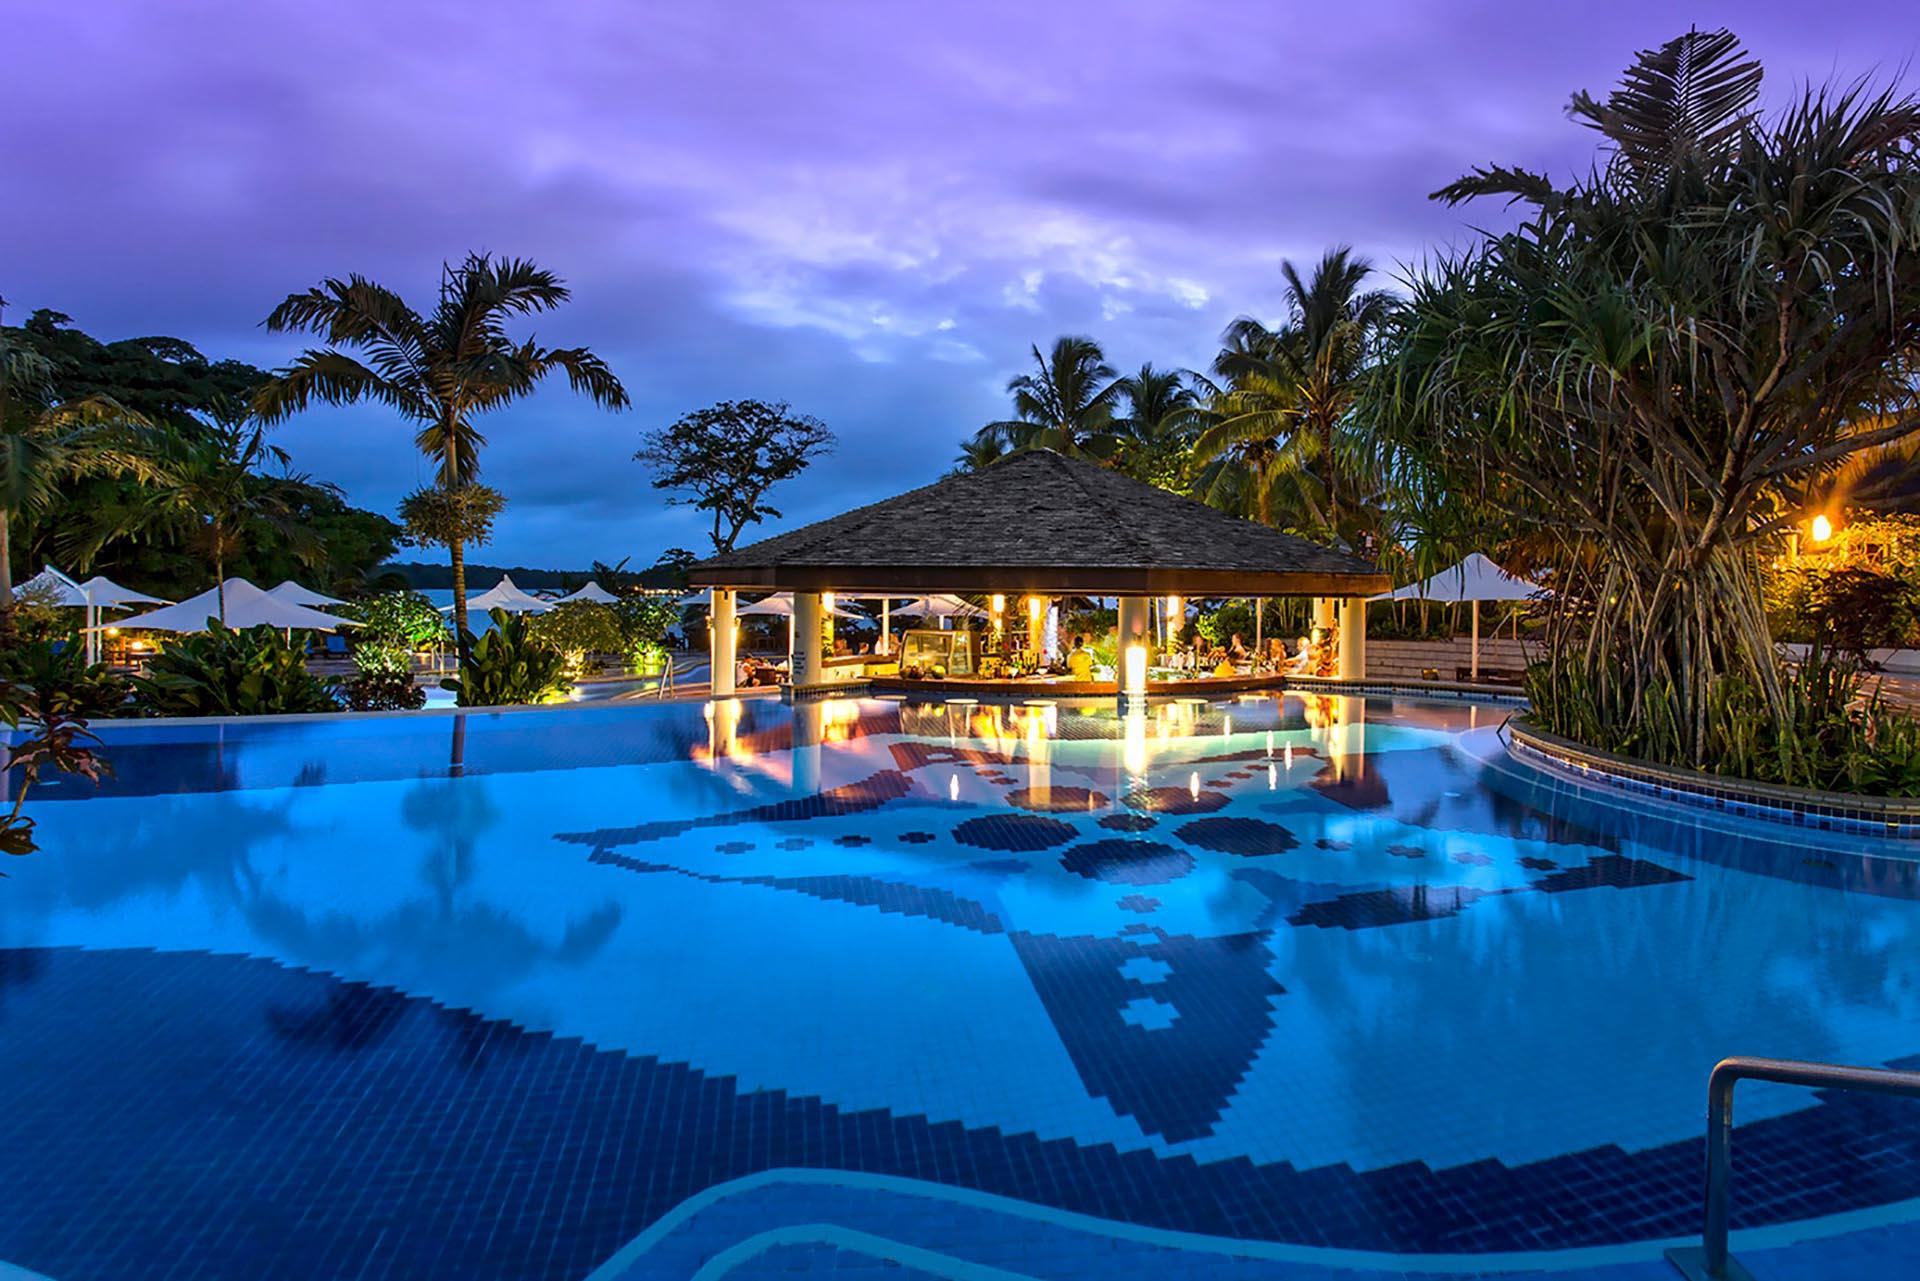 Pool Night at Warwick Le Lagon Vanuatu